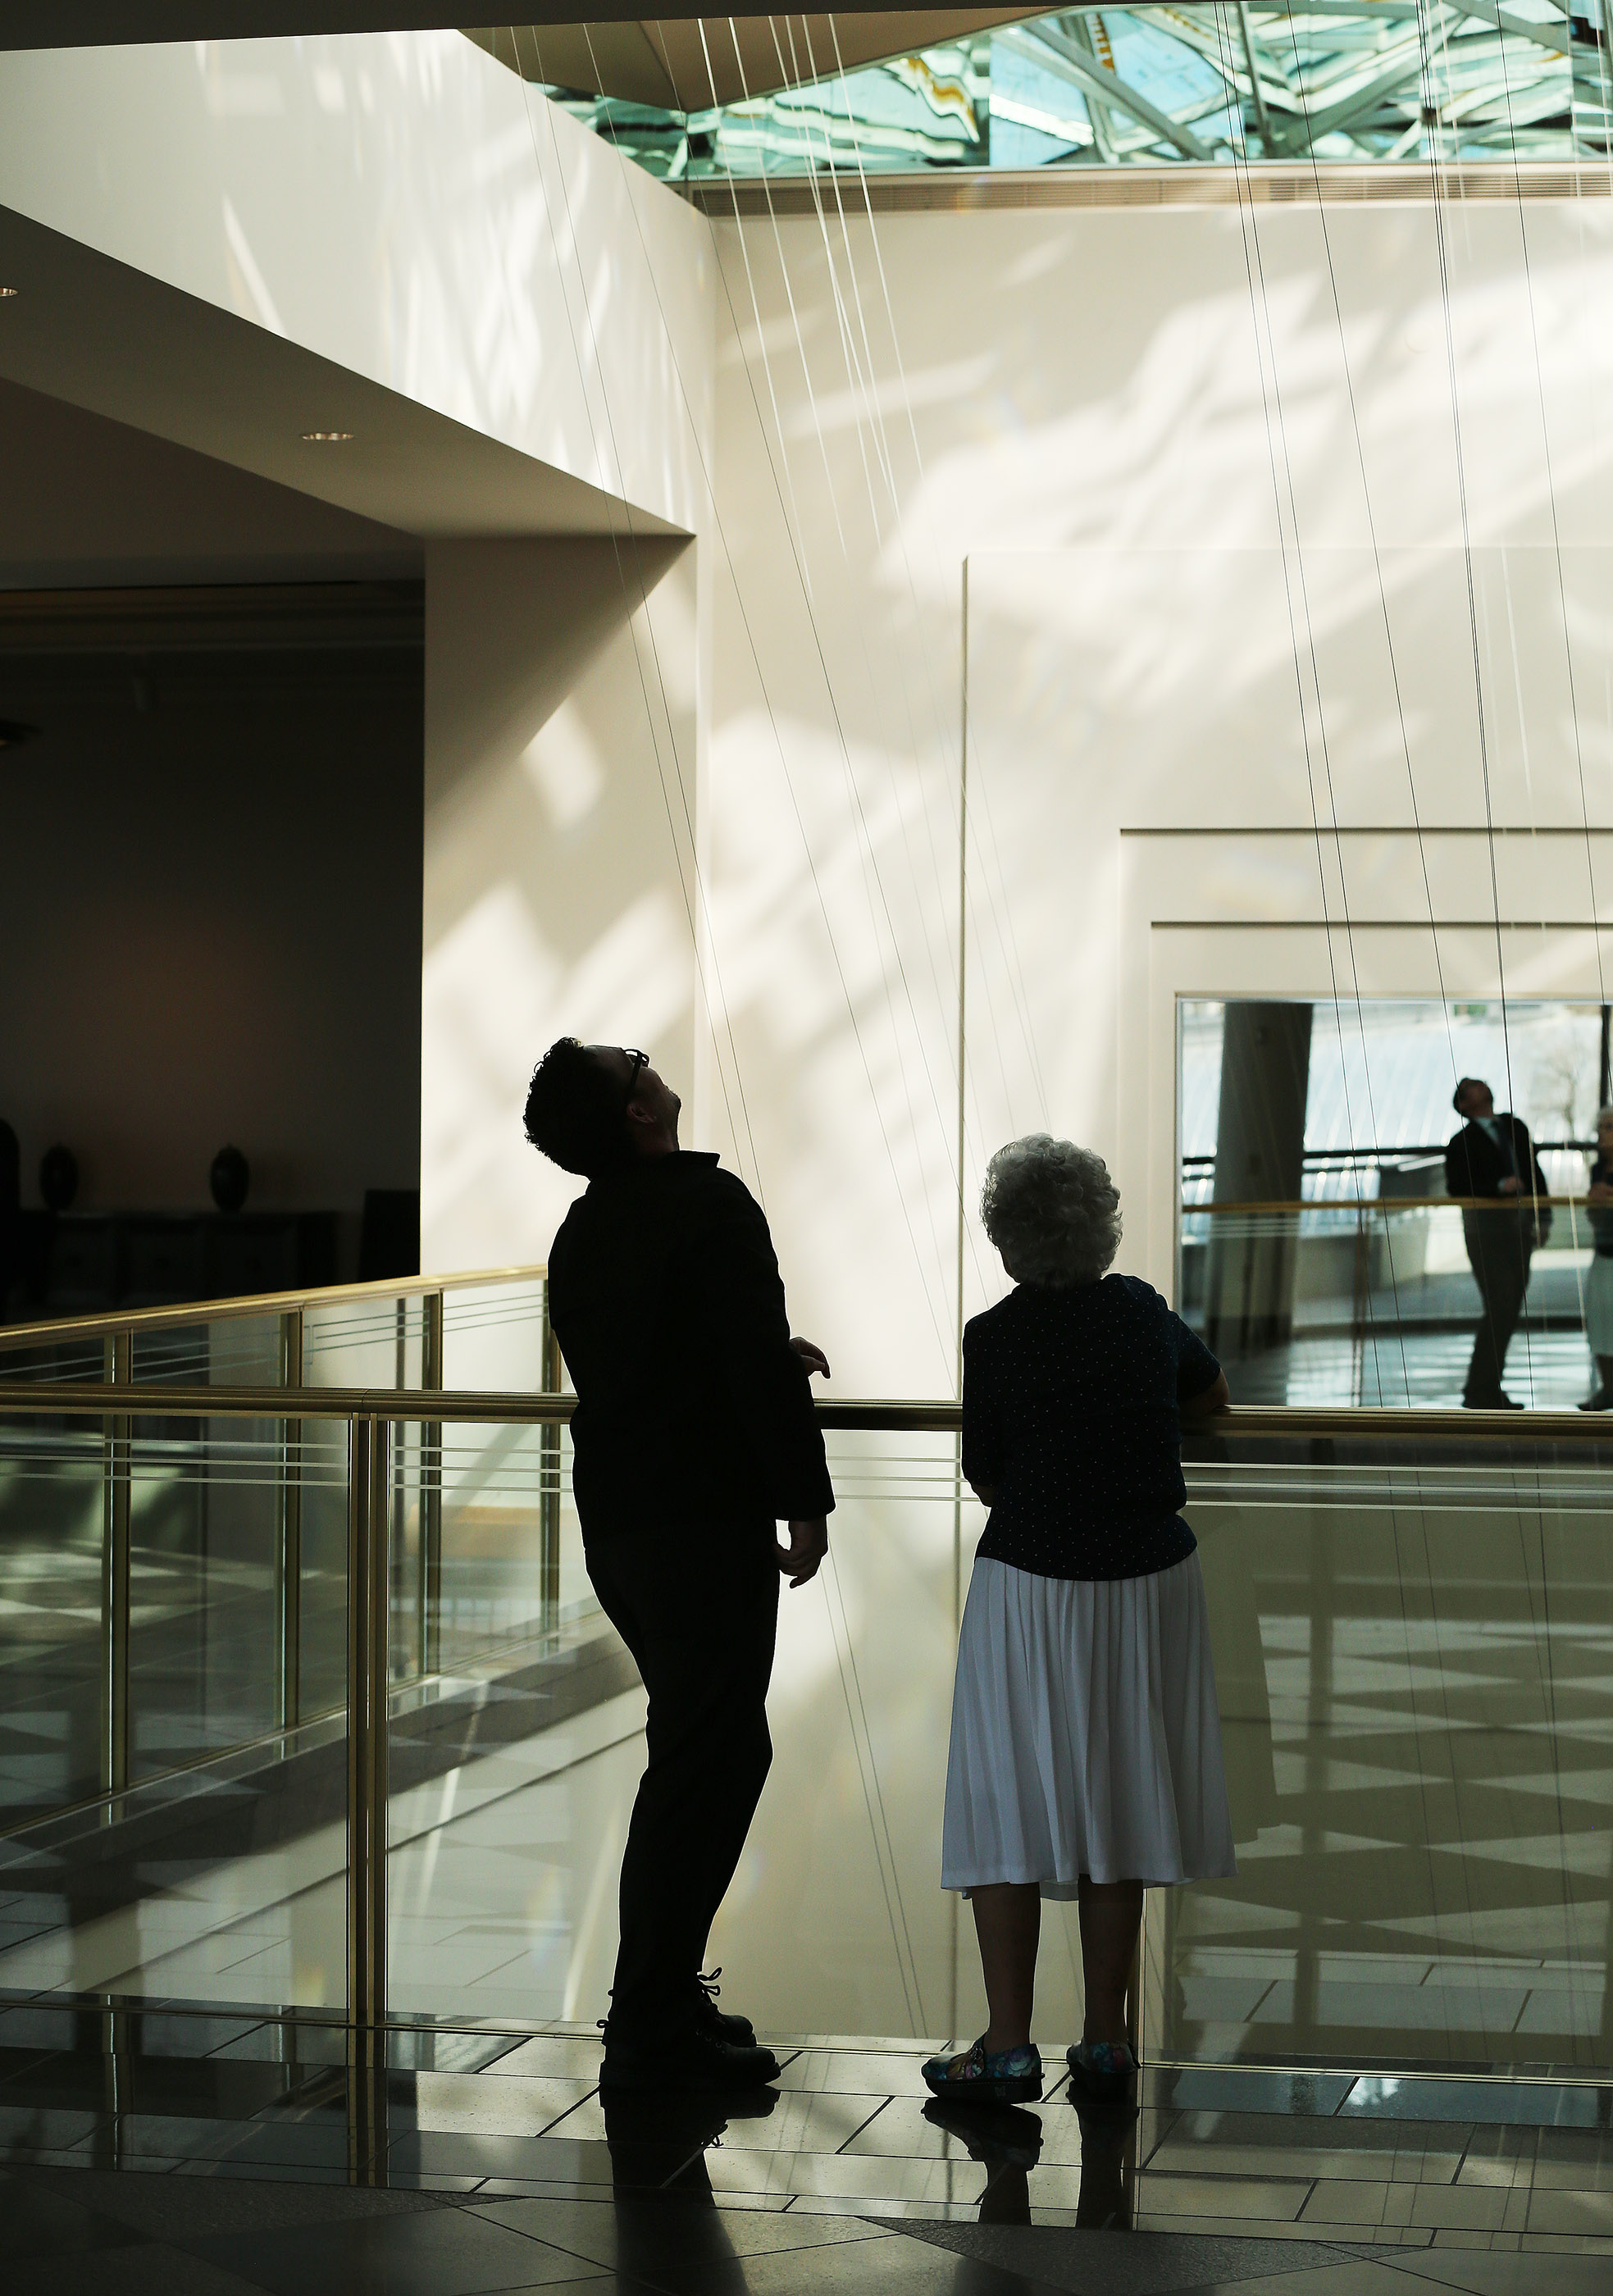 Attendees wander the Conference Center during the 189th Annual General Conference of The Church of Jesus Christ of Latter-day Saints in Salt Lake City on Sunday, April 7, 2019.